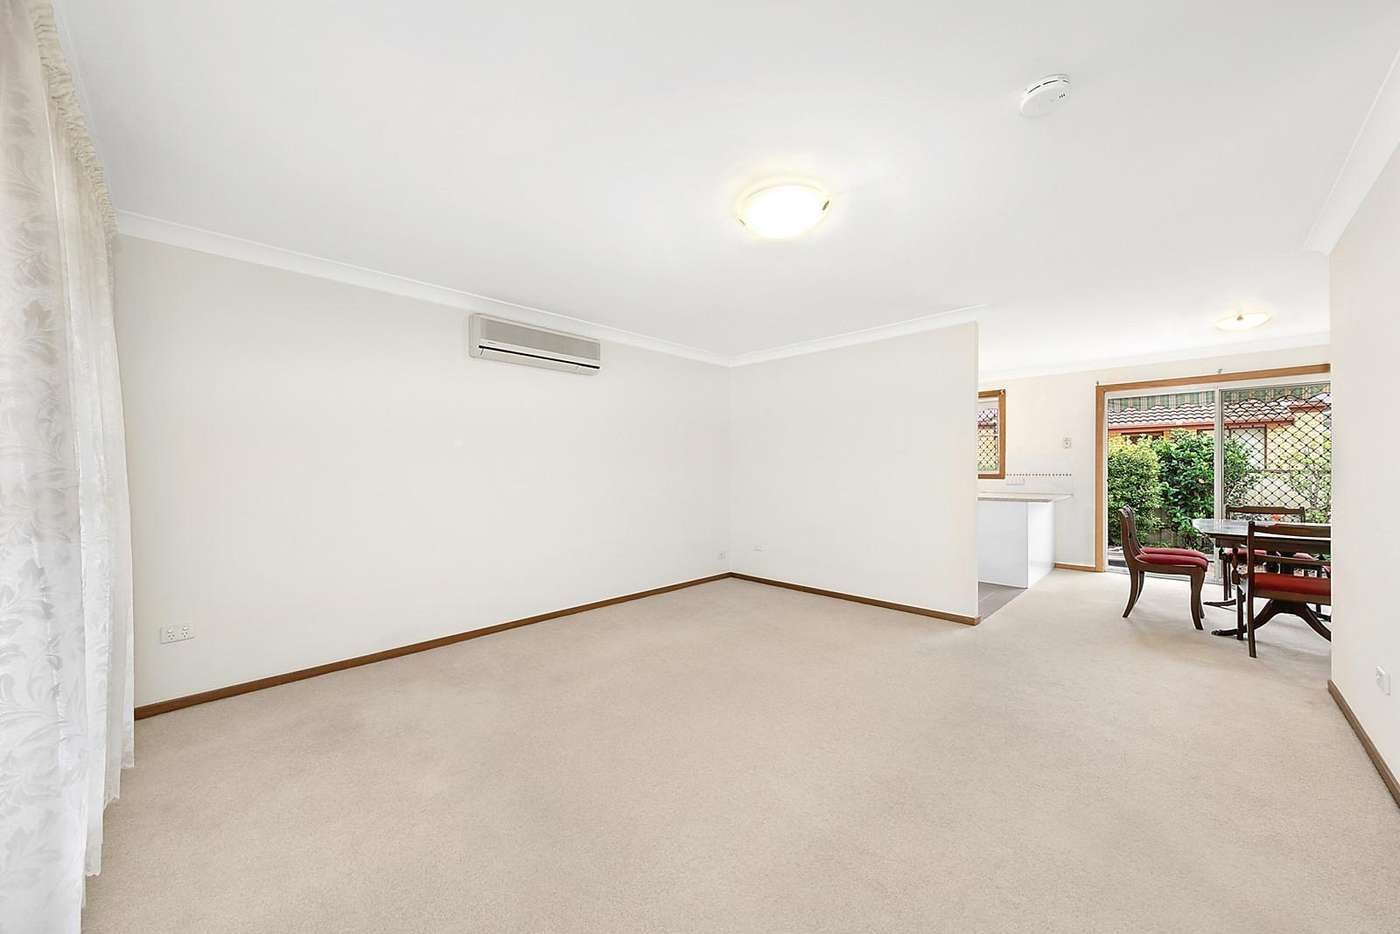 Fifth view of Homely house listing, 4/15 Oxford Street, New Lambton NSW 2305